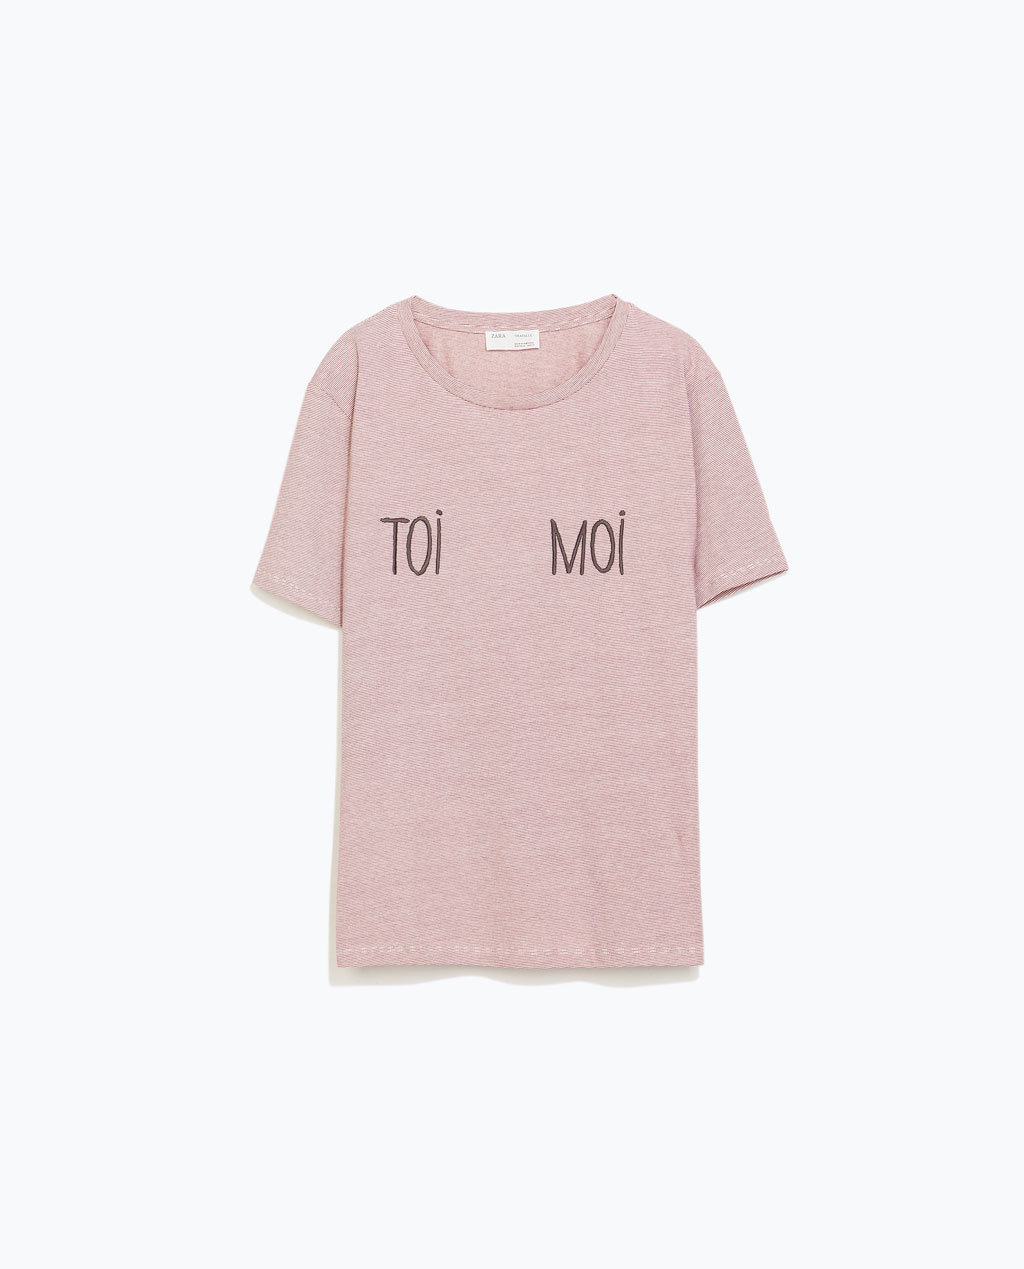 Text T Shirt - neckline: round neck; pattern: plain; style: t-shirt; predominant colour: blush; occasions: casual; length: standard; fibres: cotton - 100%; fit: straight cut; sleeve length: short sleeve; sleeve style: standard; pattern type: fabric; texture group: jersey - stretchy/drapey; season: a/w 2014